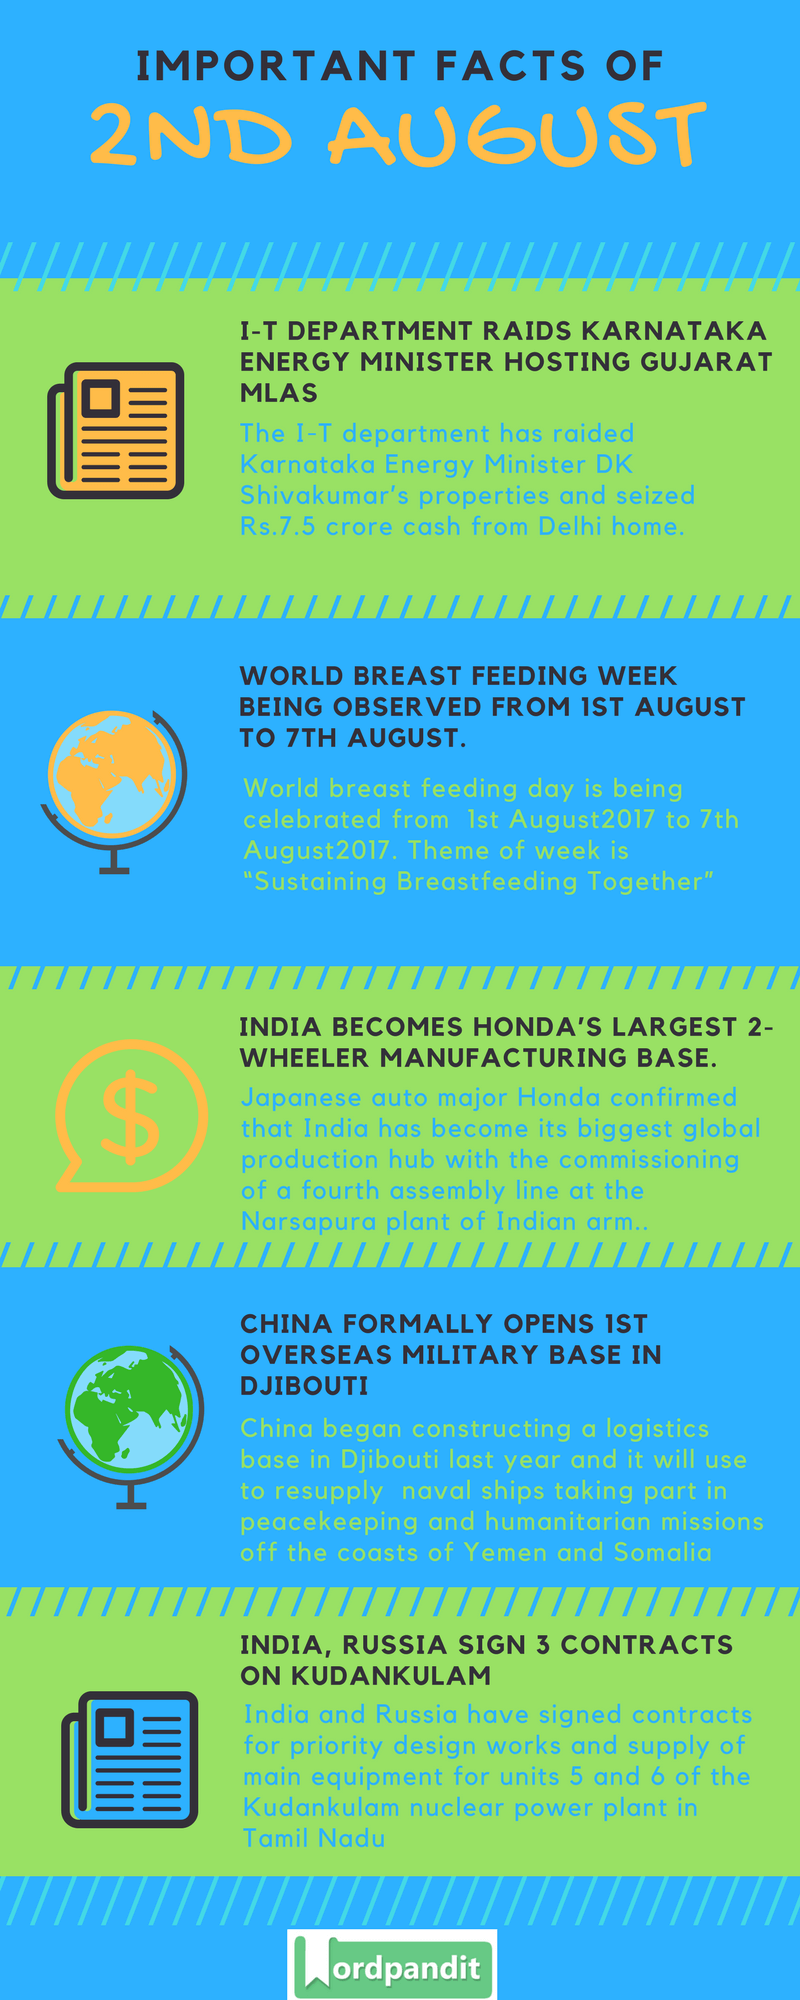 Daily-Current-Affairs-2-august-2017-Current-Affairs-Quiz-august-2-2017-Current-Affairs-Infographic